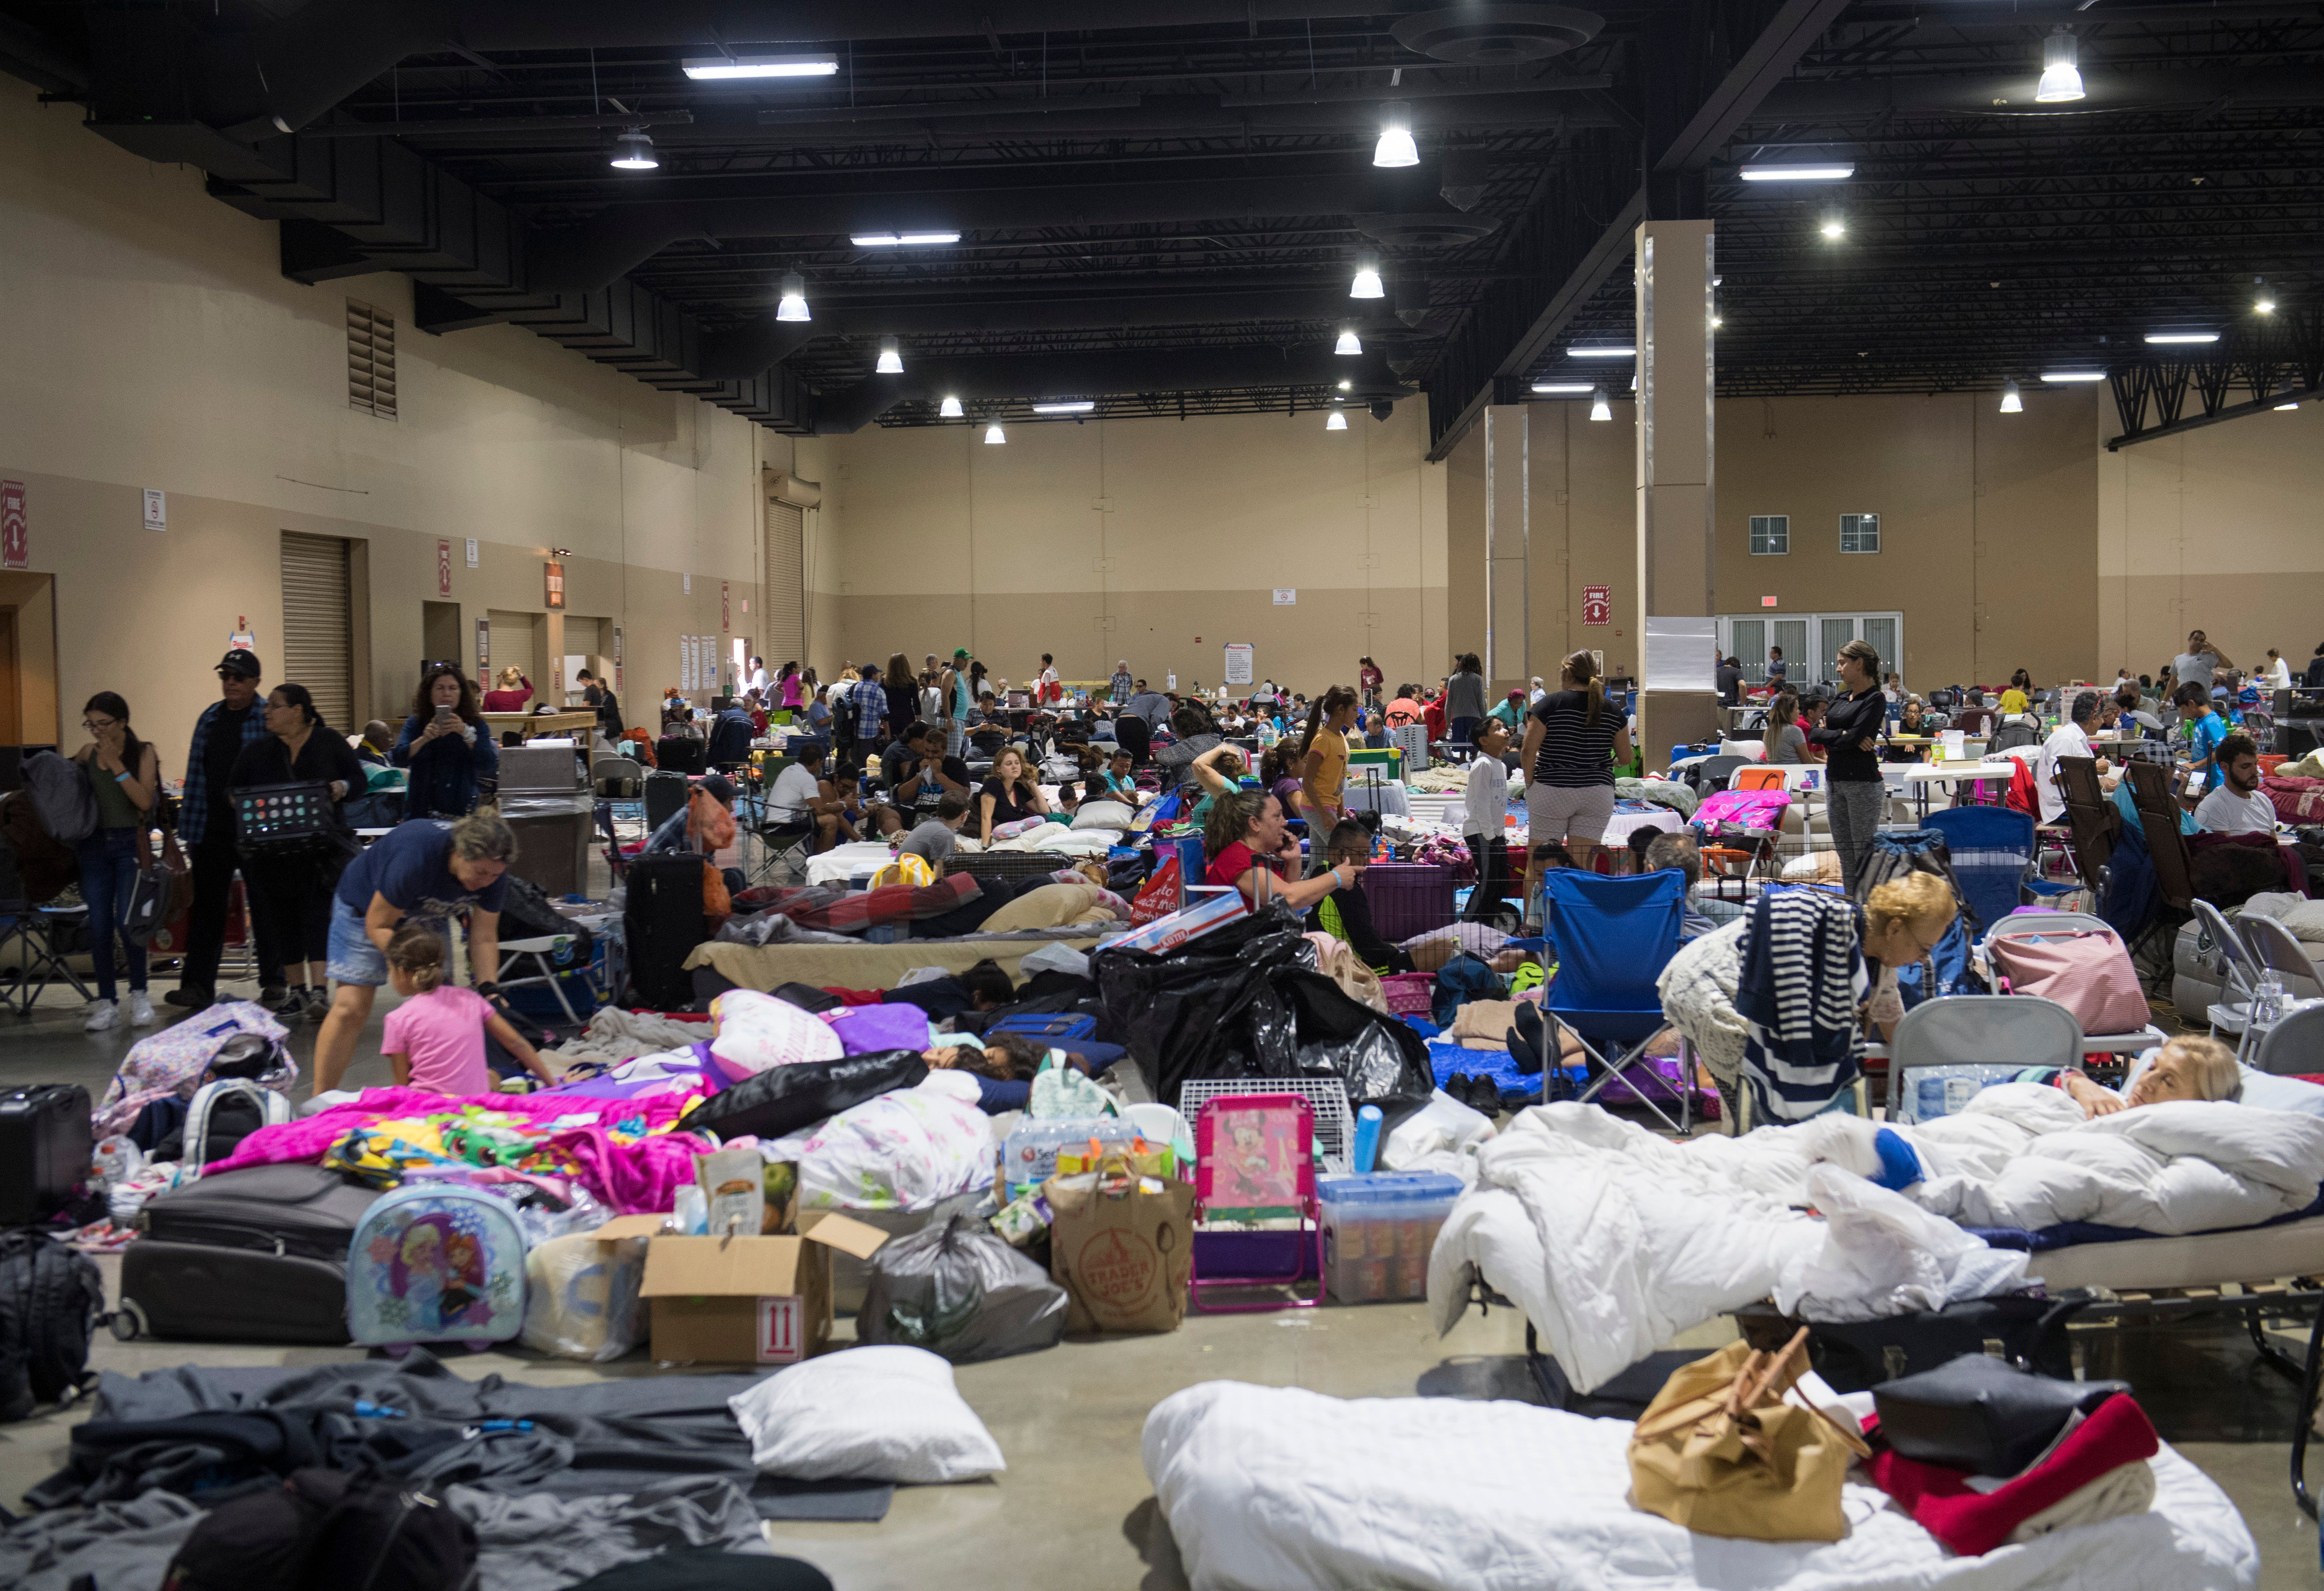 Hundreds of people gather in an emergency shelter at the Miami-Dade County Fair Expo Center in Miami, Florida, September 8, 2017, ahead of Hurricane Irma.